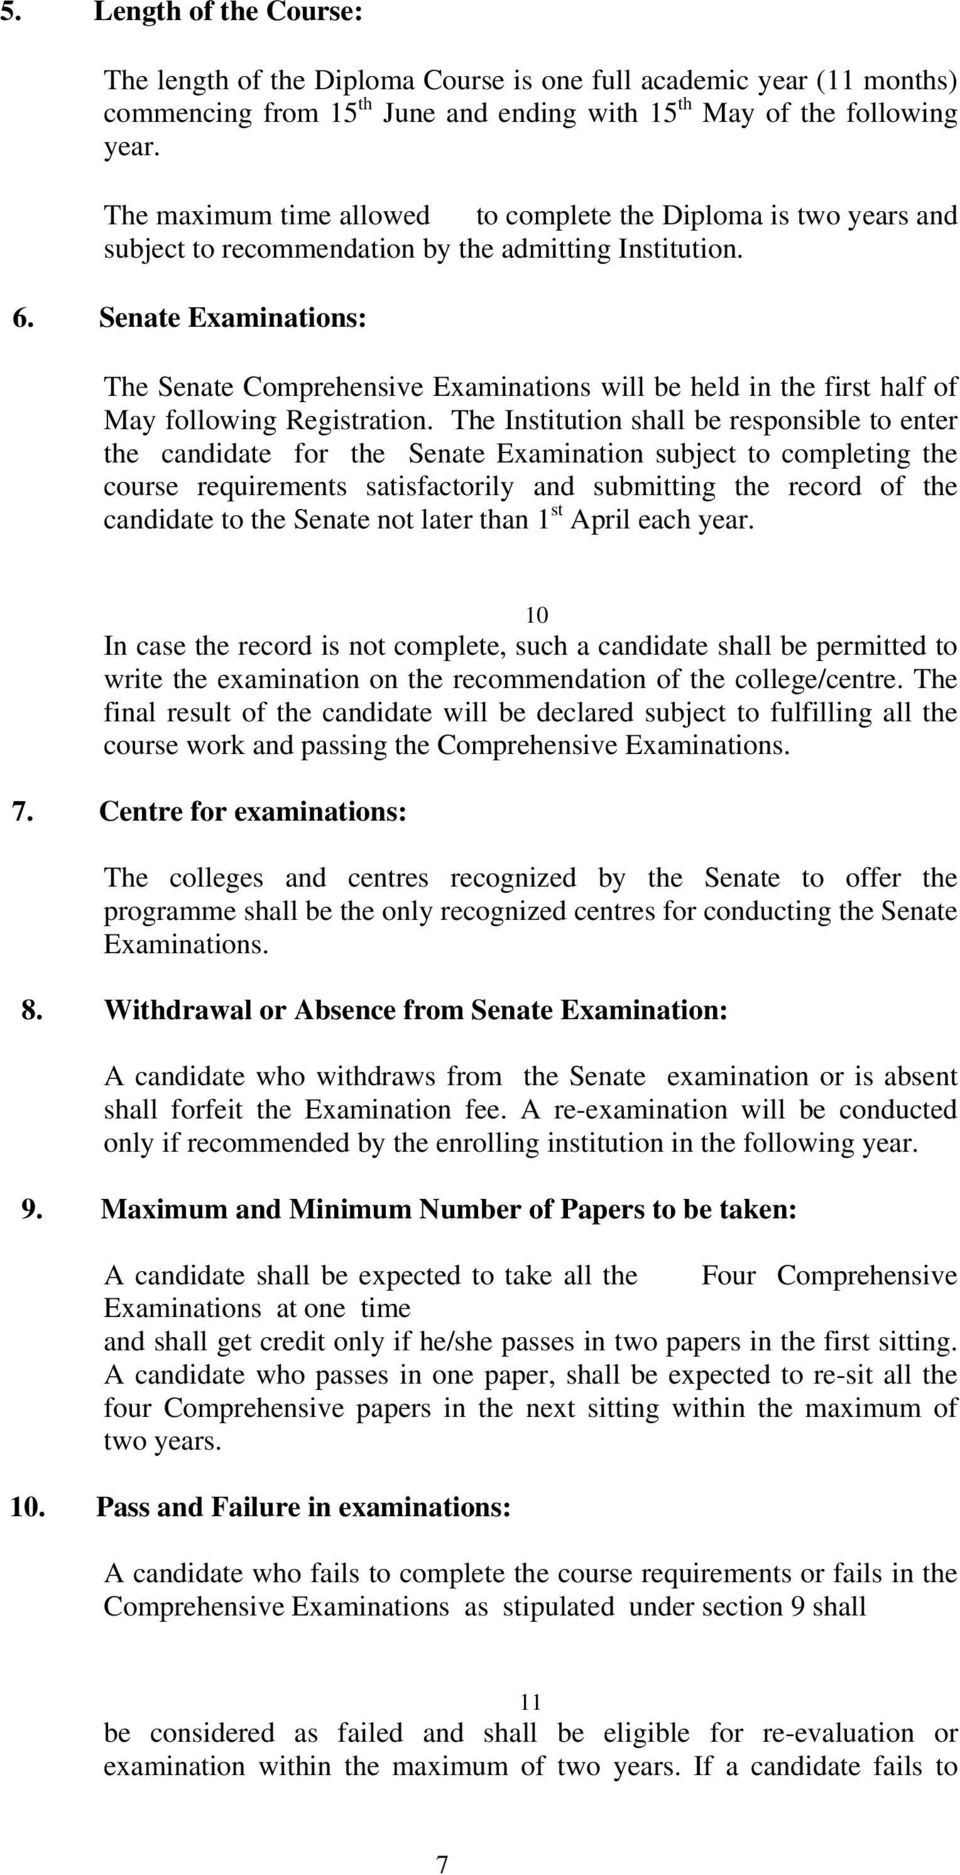 Senate Examinations: The Senate Comprehensive Examinations will be held in the first half of May following Registration.